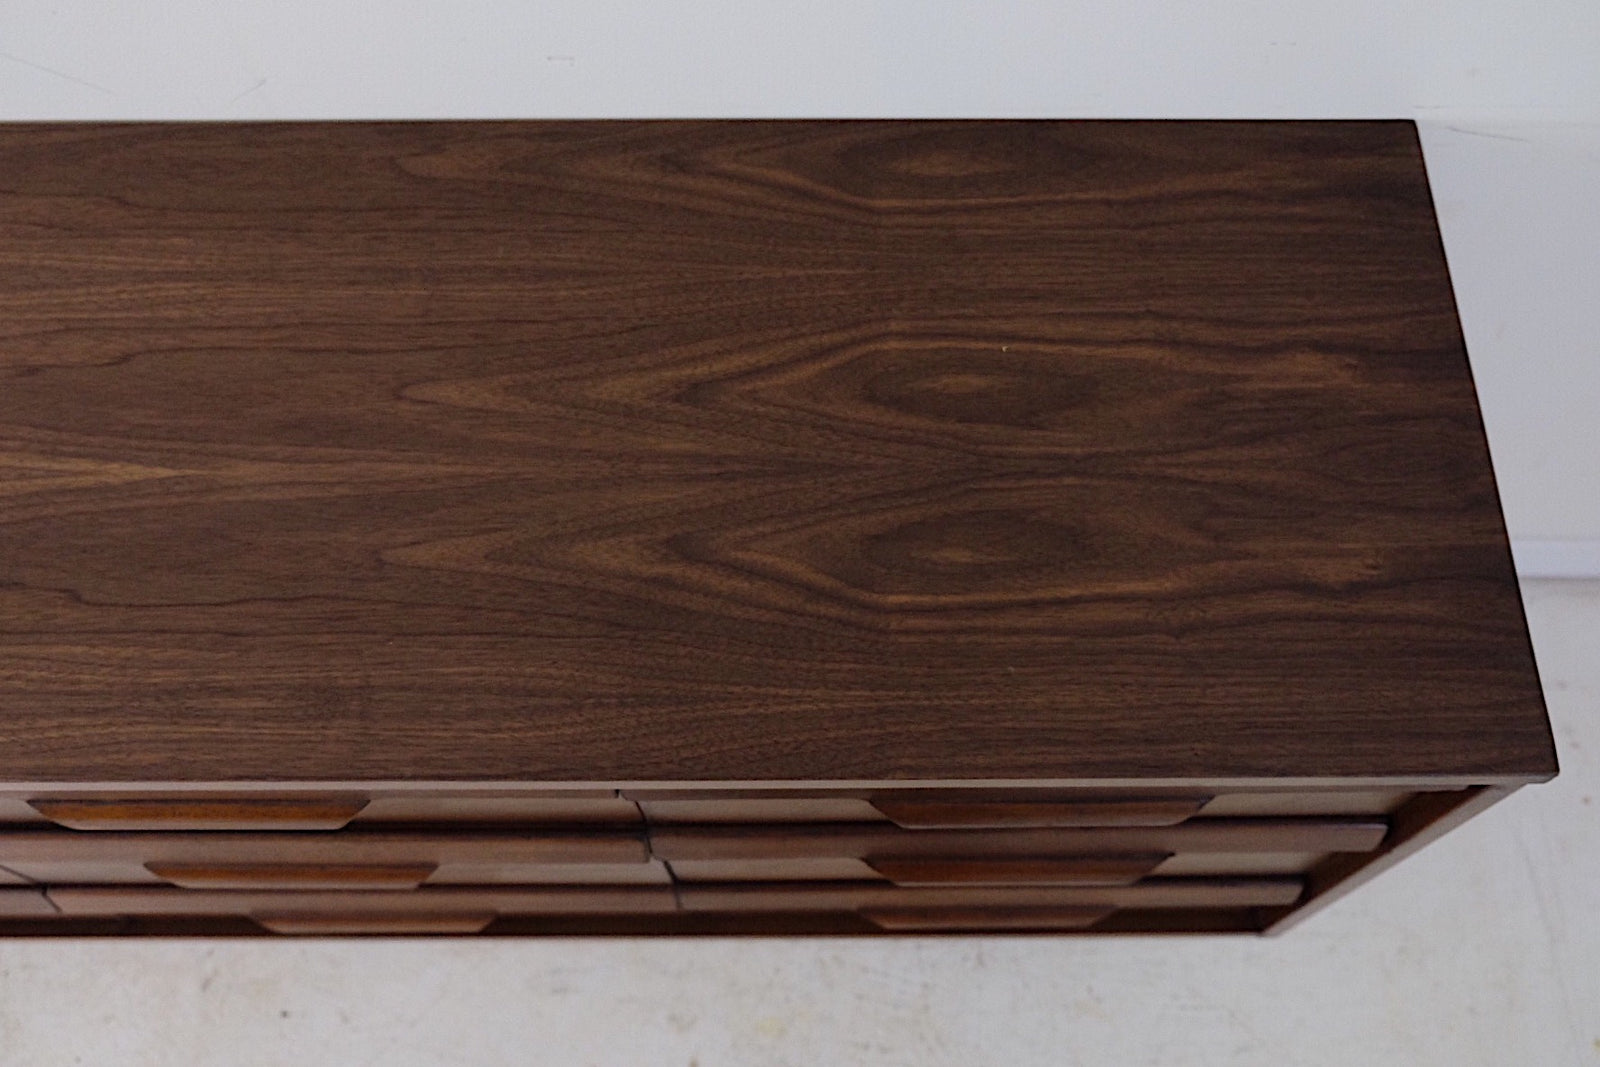 Bassett Low Dresser Nine Drawer Mid Century Modern Carved Handles In Style of Johnson Carper